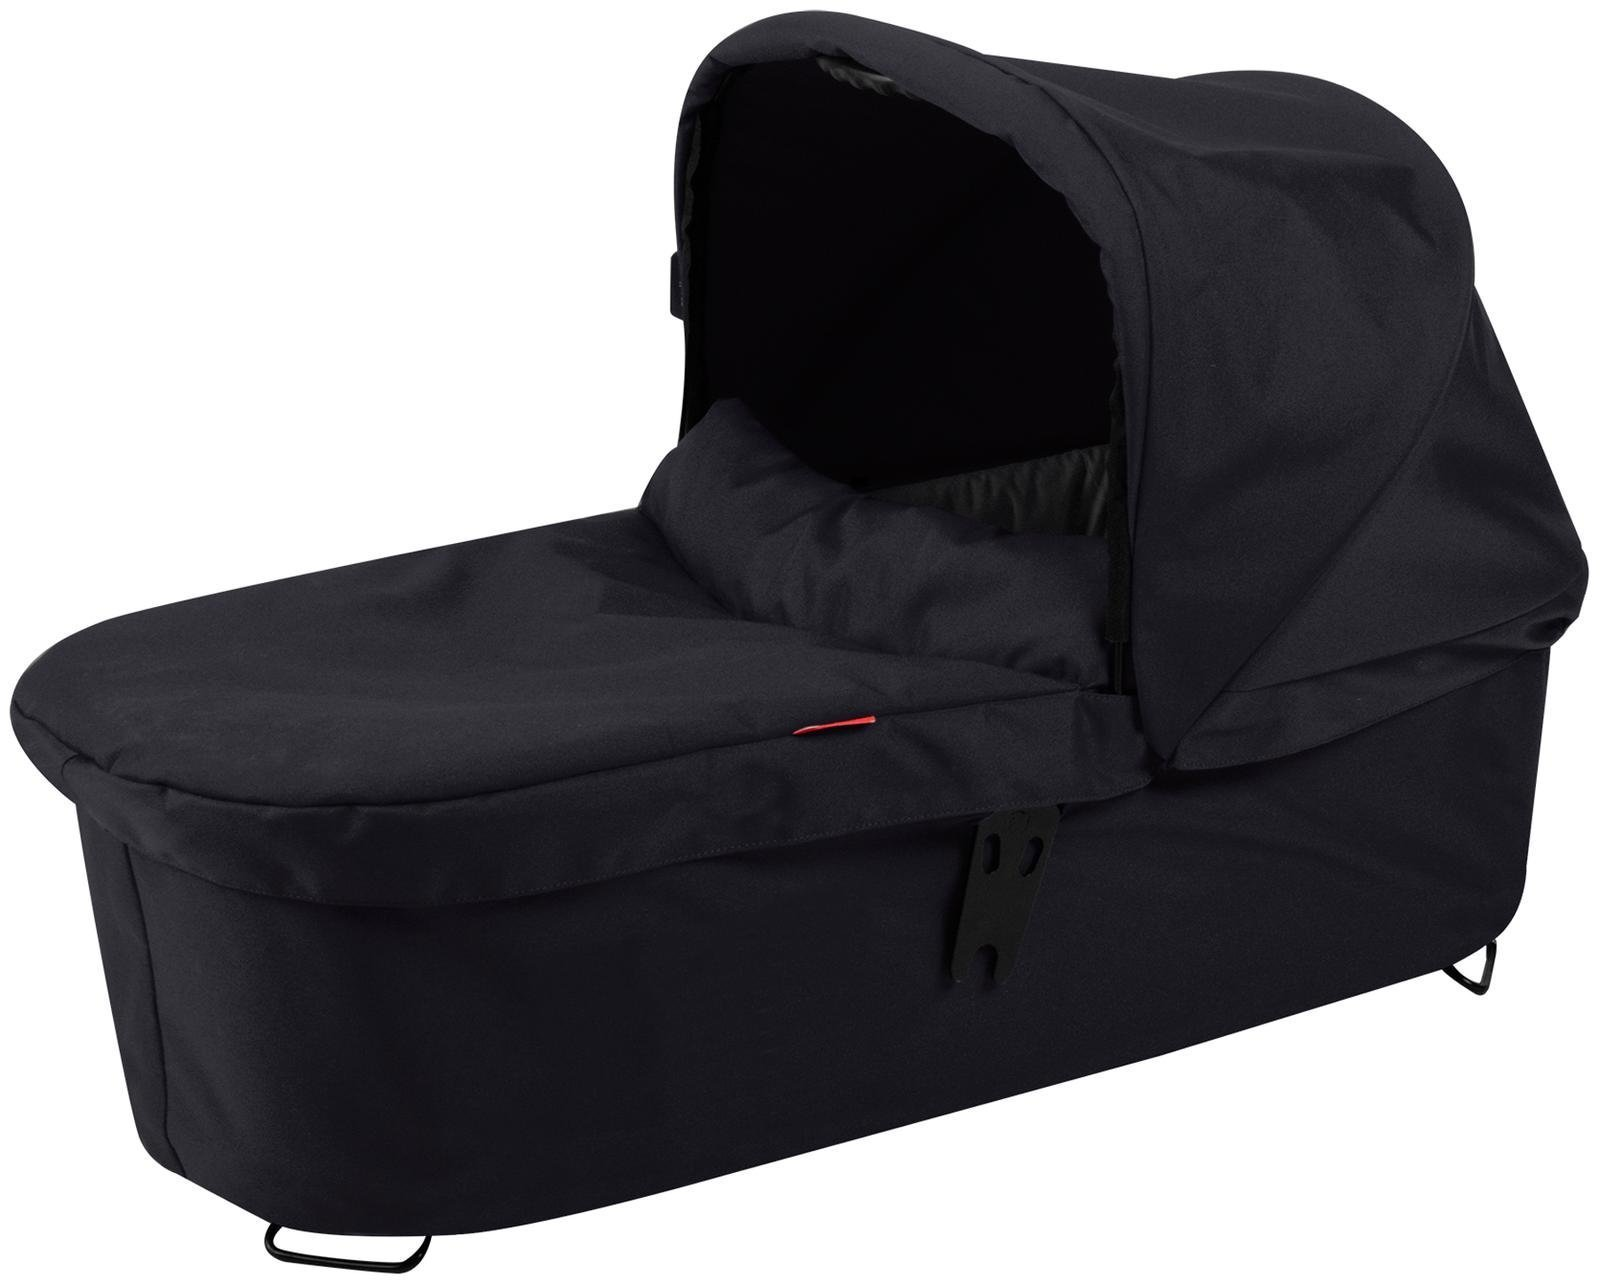 phil&teds Snug Carrycot for Dash Stroller, Black by phil&teds (Image #1)